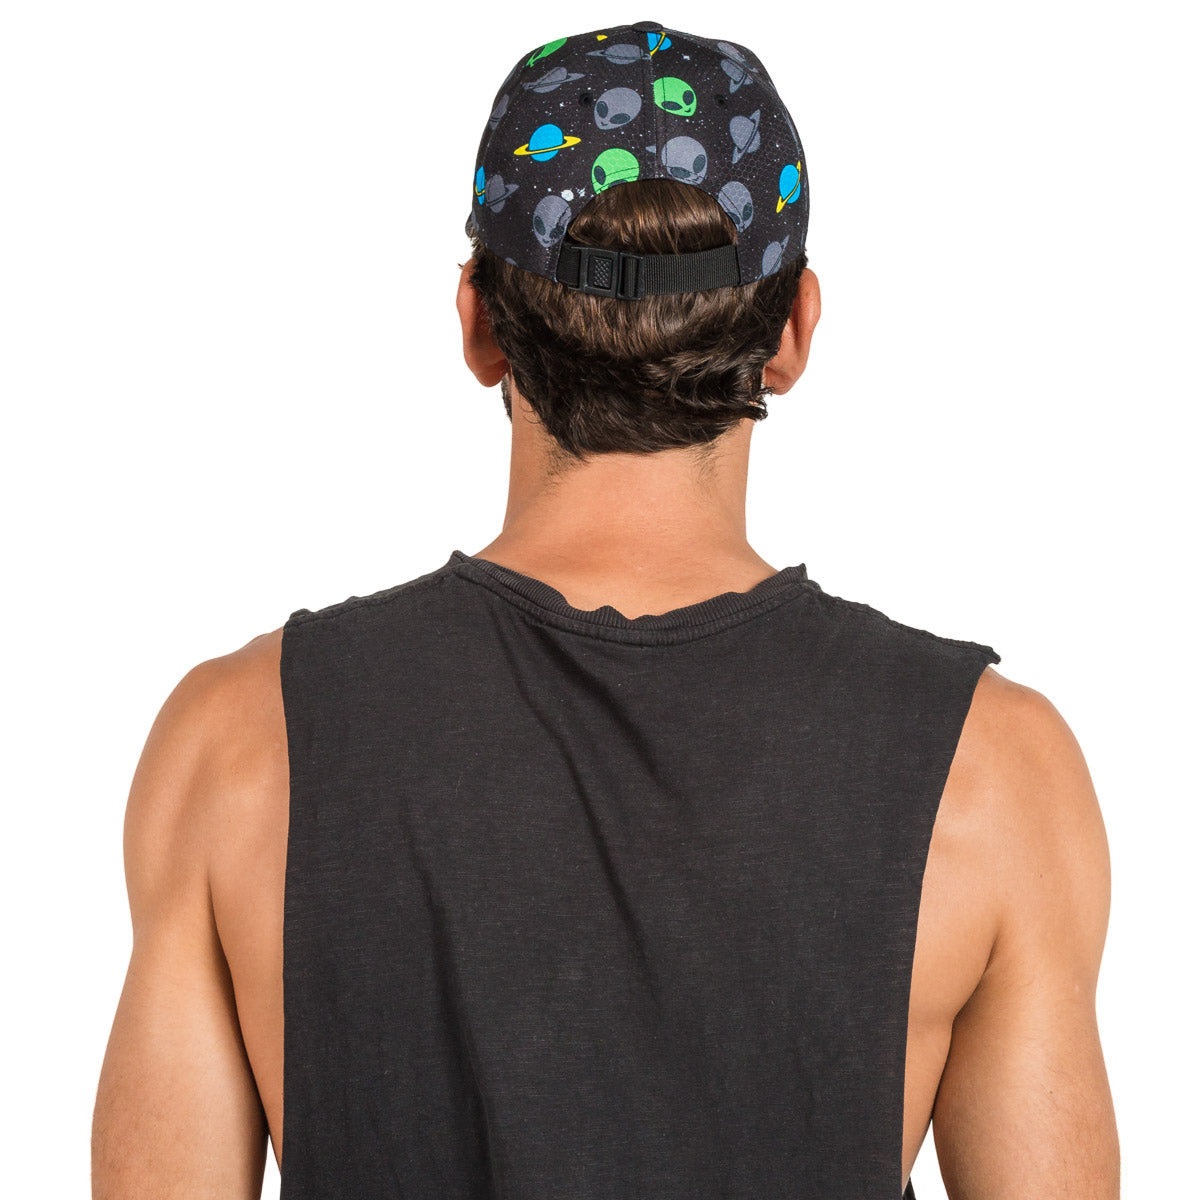 Alien Printed Rave Hat